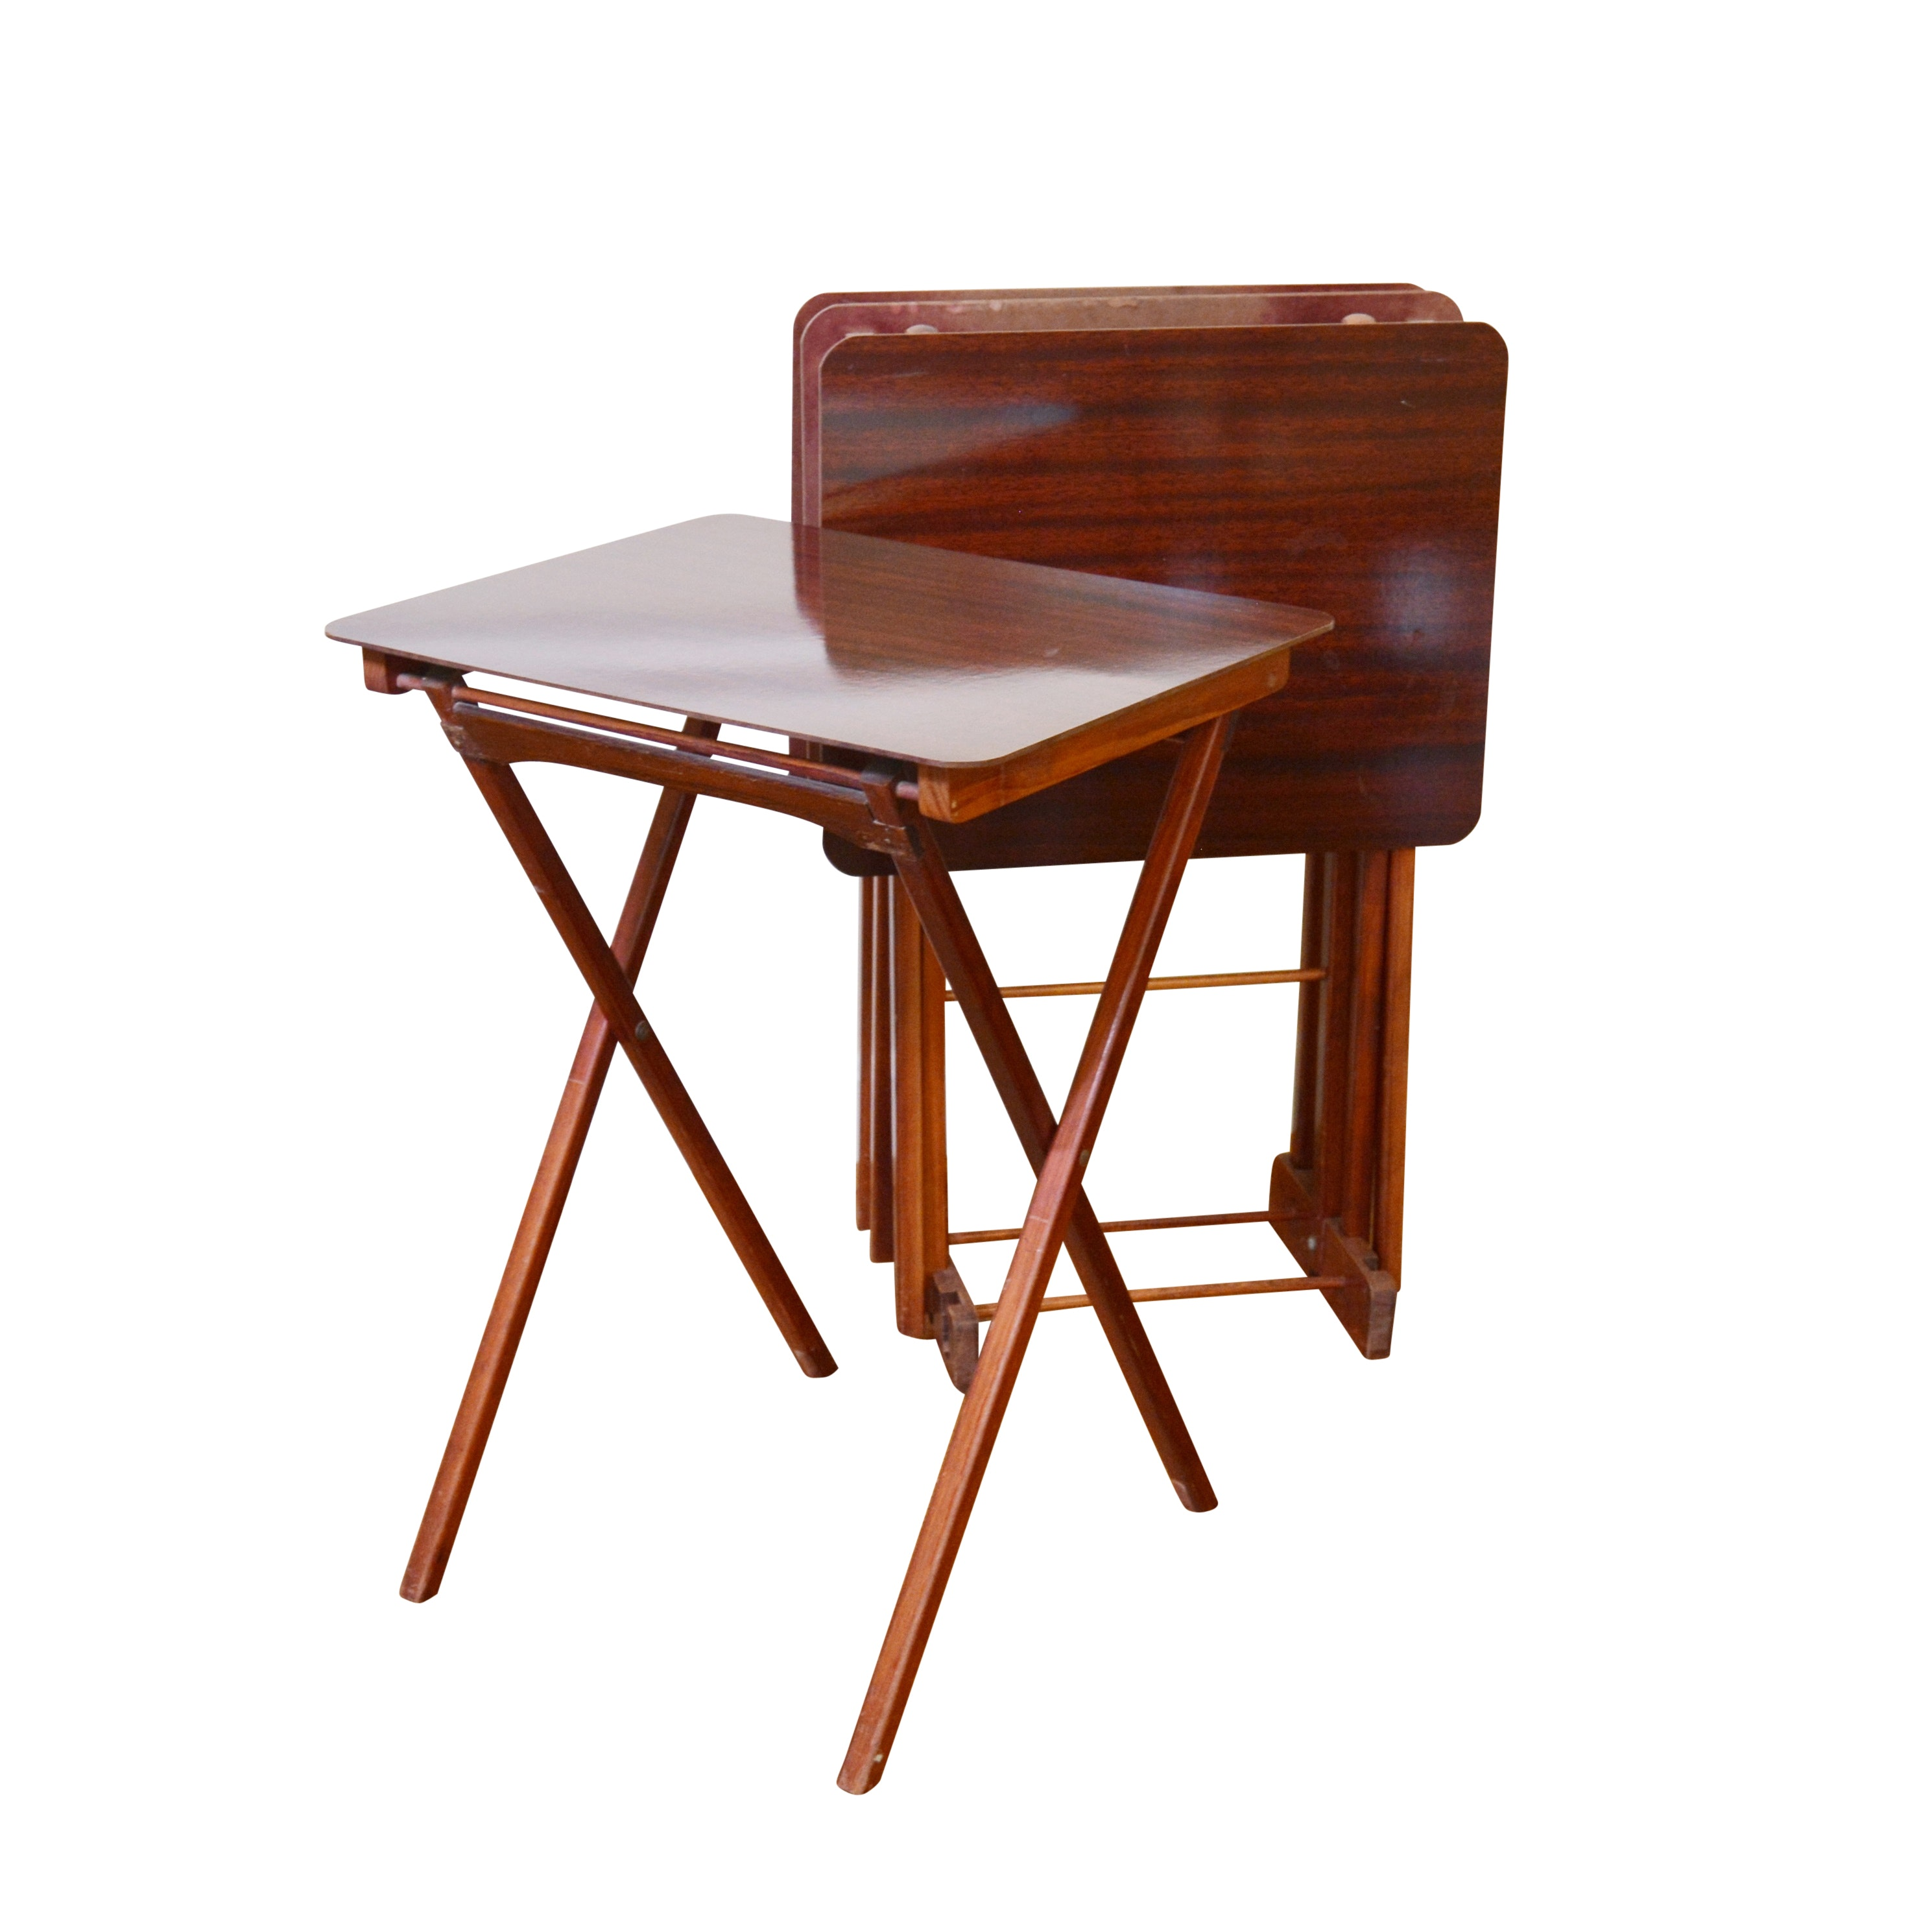 Folding Tray Tables and Stand, Mid-20th Century